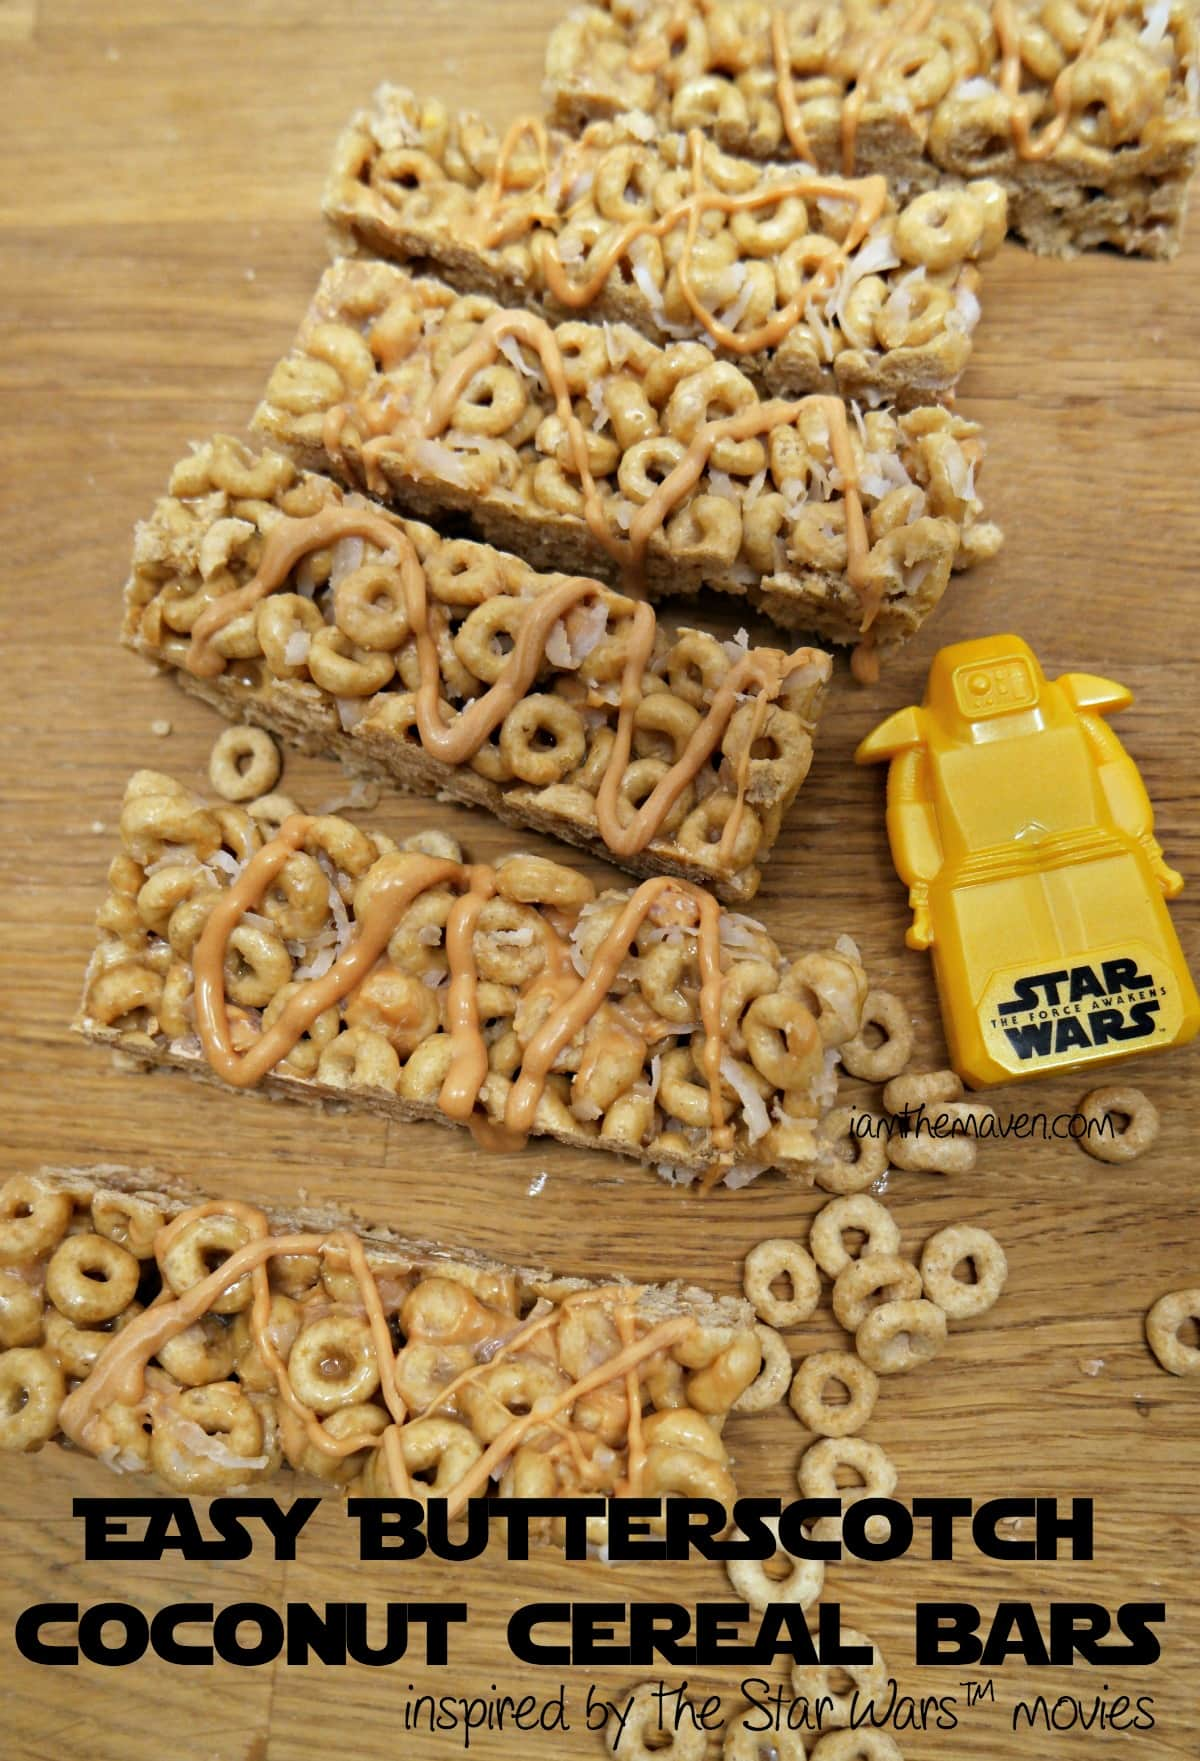 These butterscotch coconut cereal bars are easy peasy to make and enjoy while waiting in line to see Star Wars™ #FoodAwakens AD